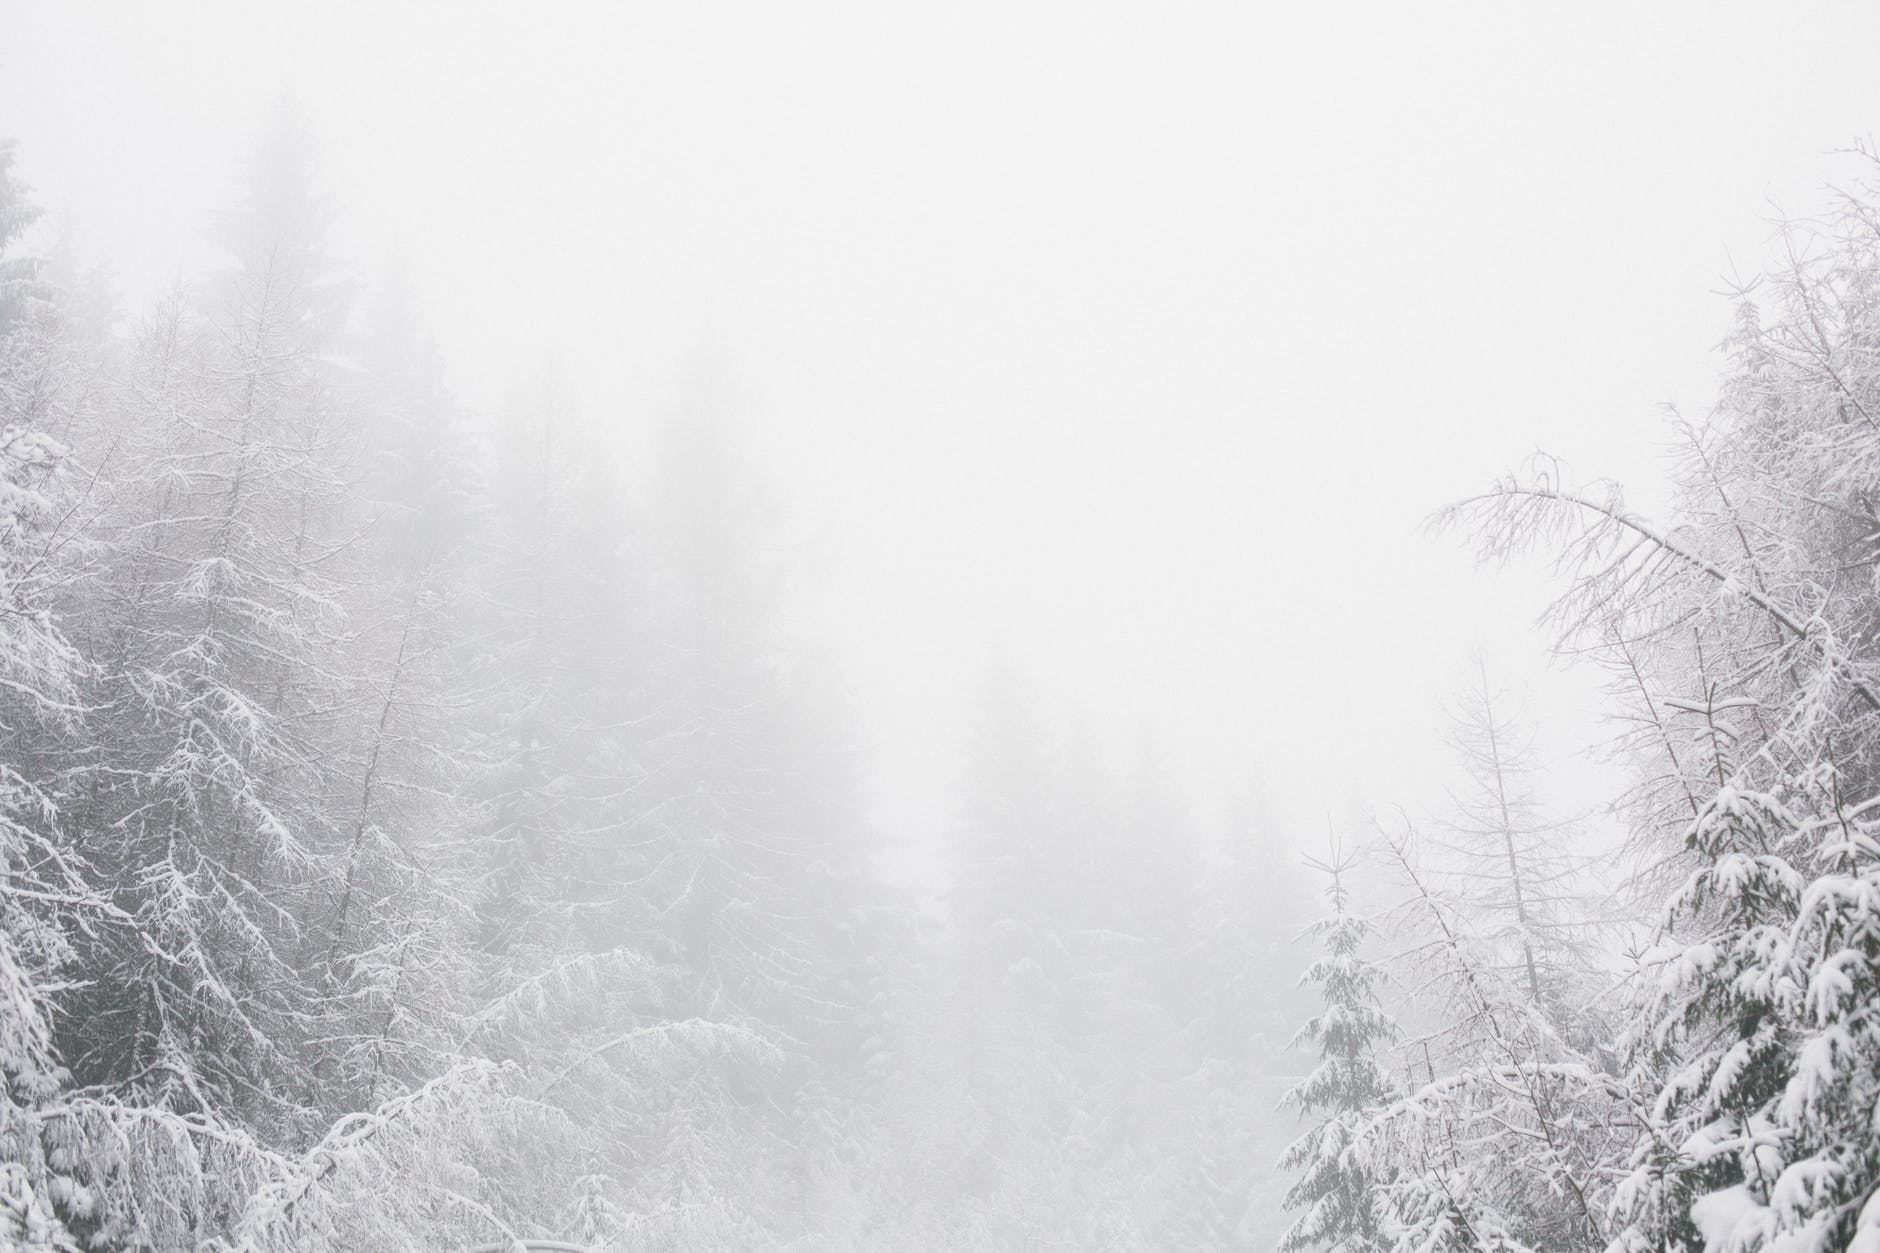 white snowy environment with pine trees